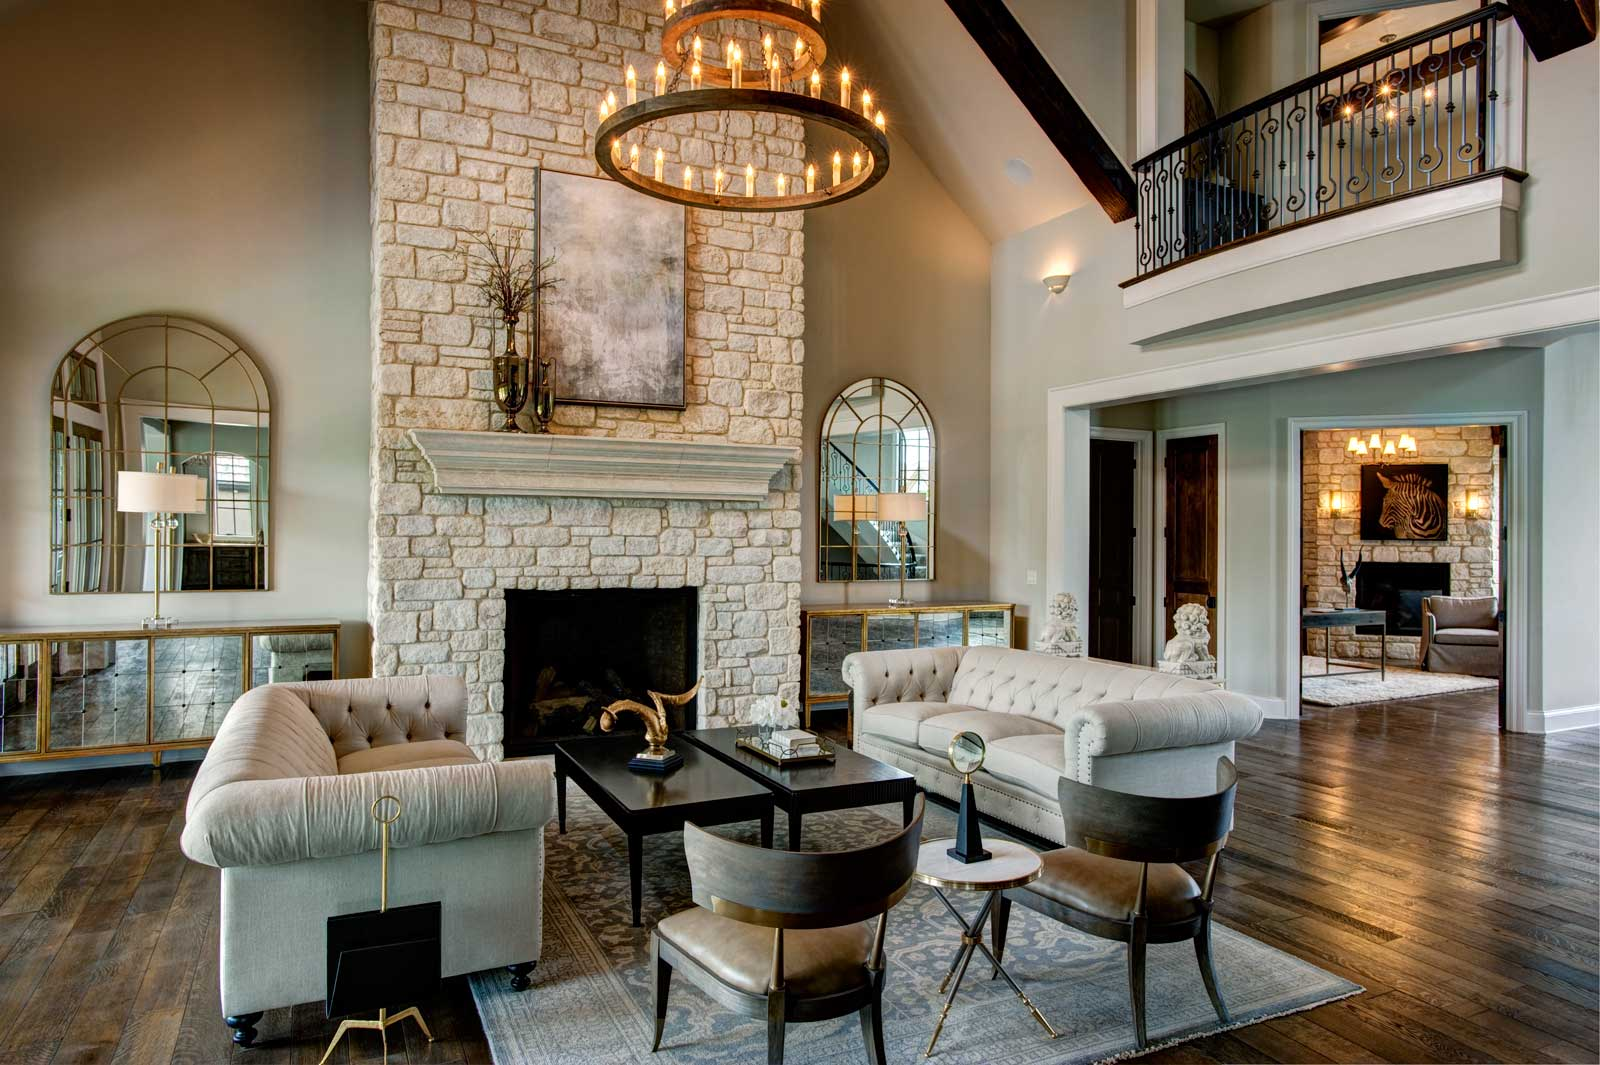 Home groover interior design for Interior designer design kansas city